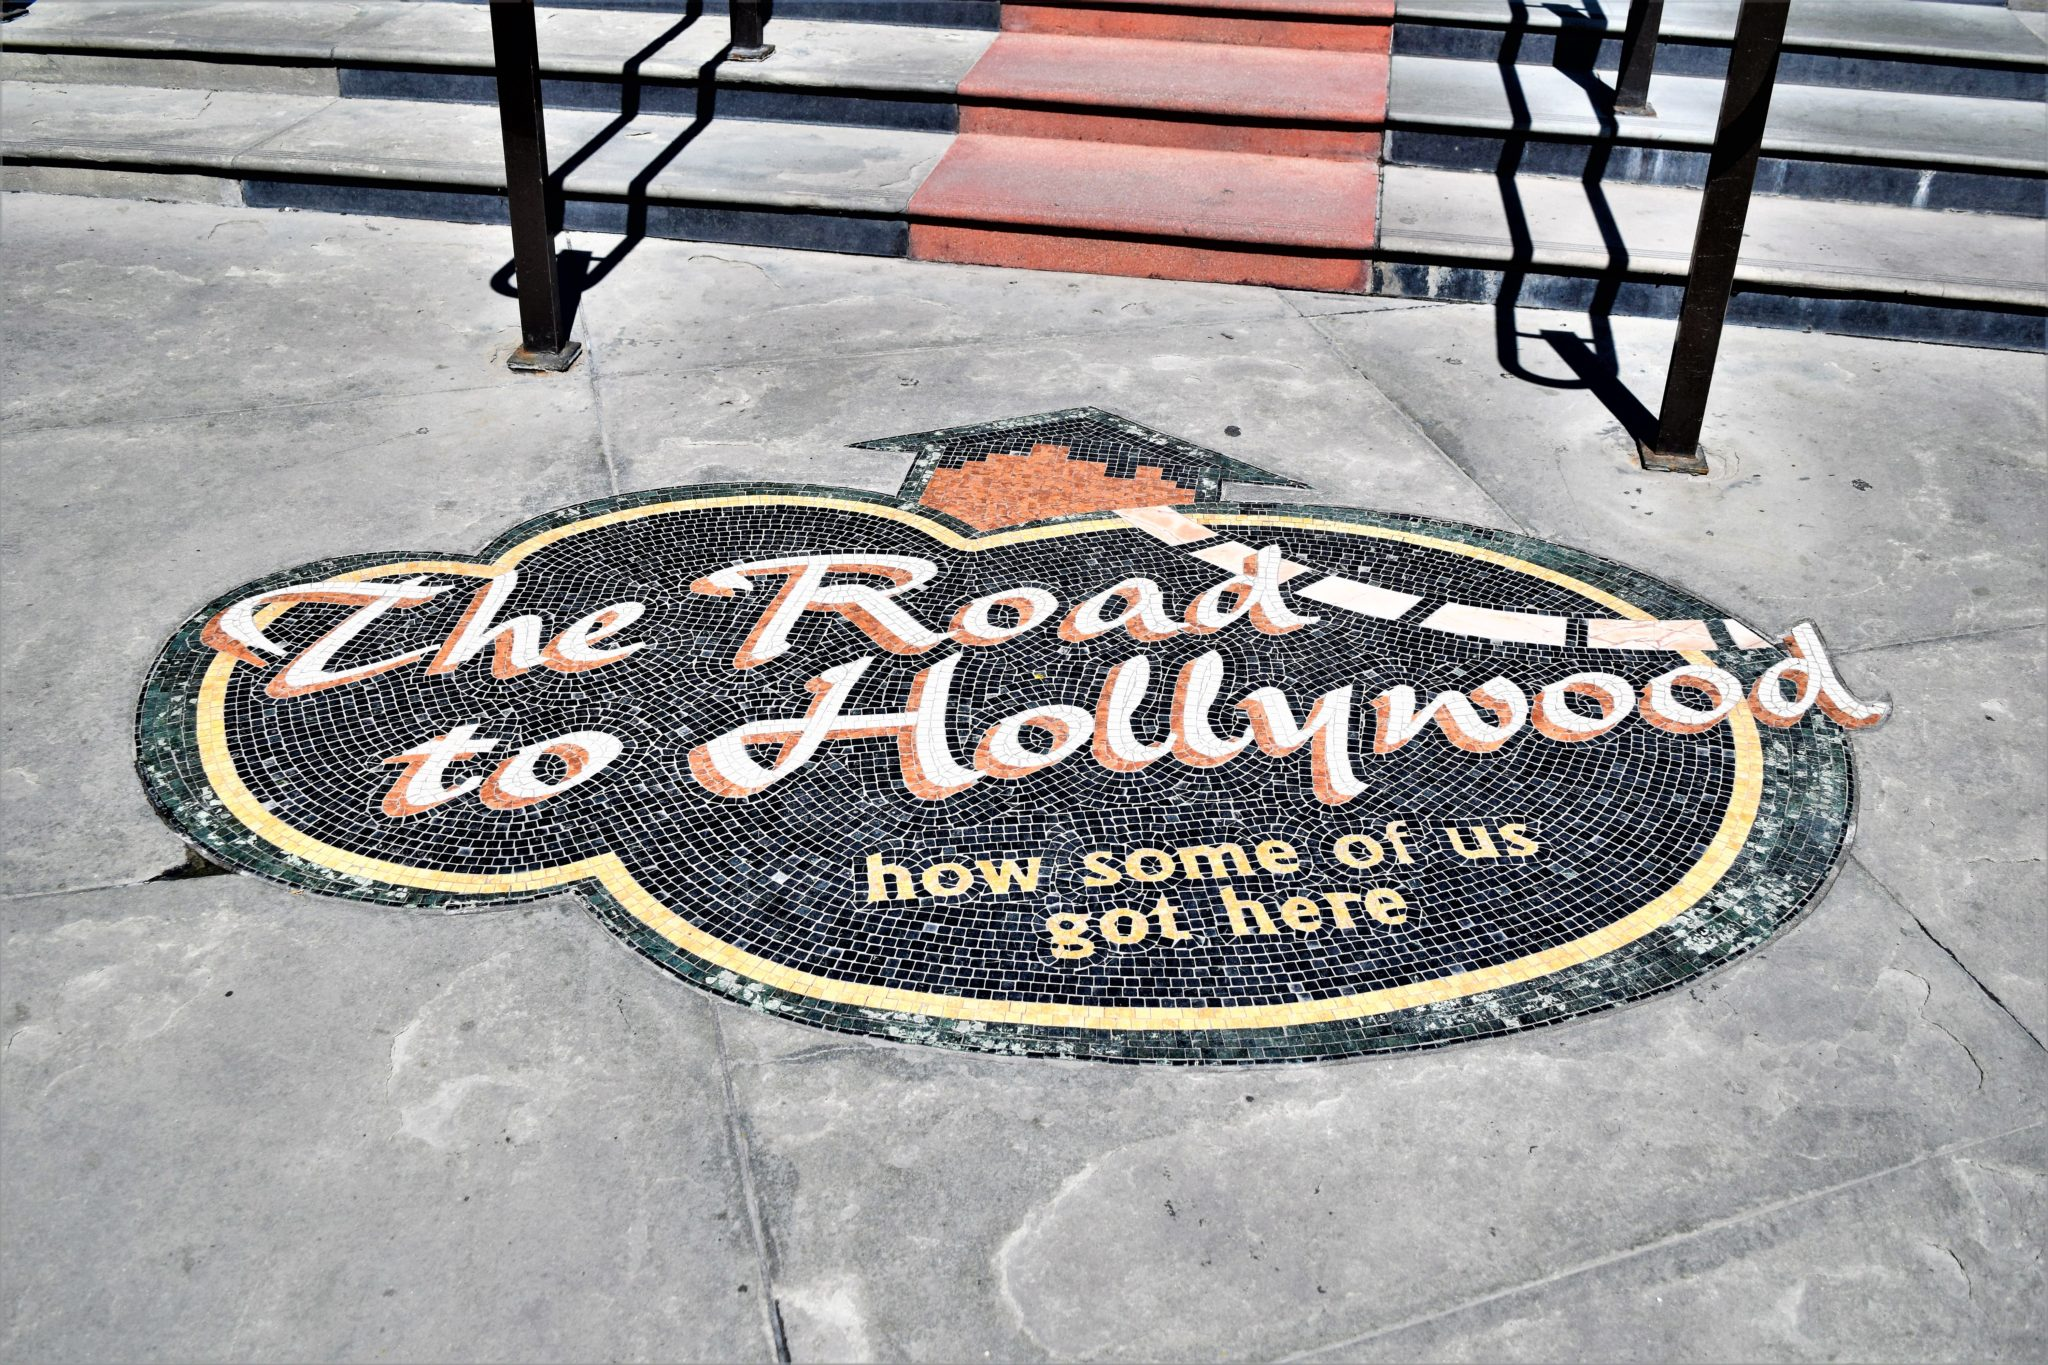 The Road to Hollywood, hollywood highland center, free things to do in los angeles